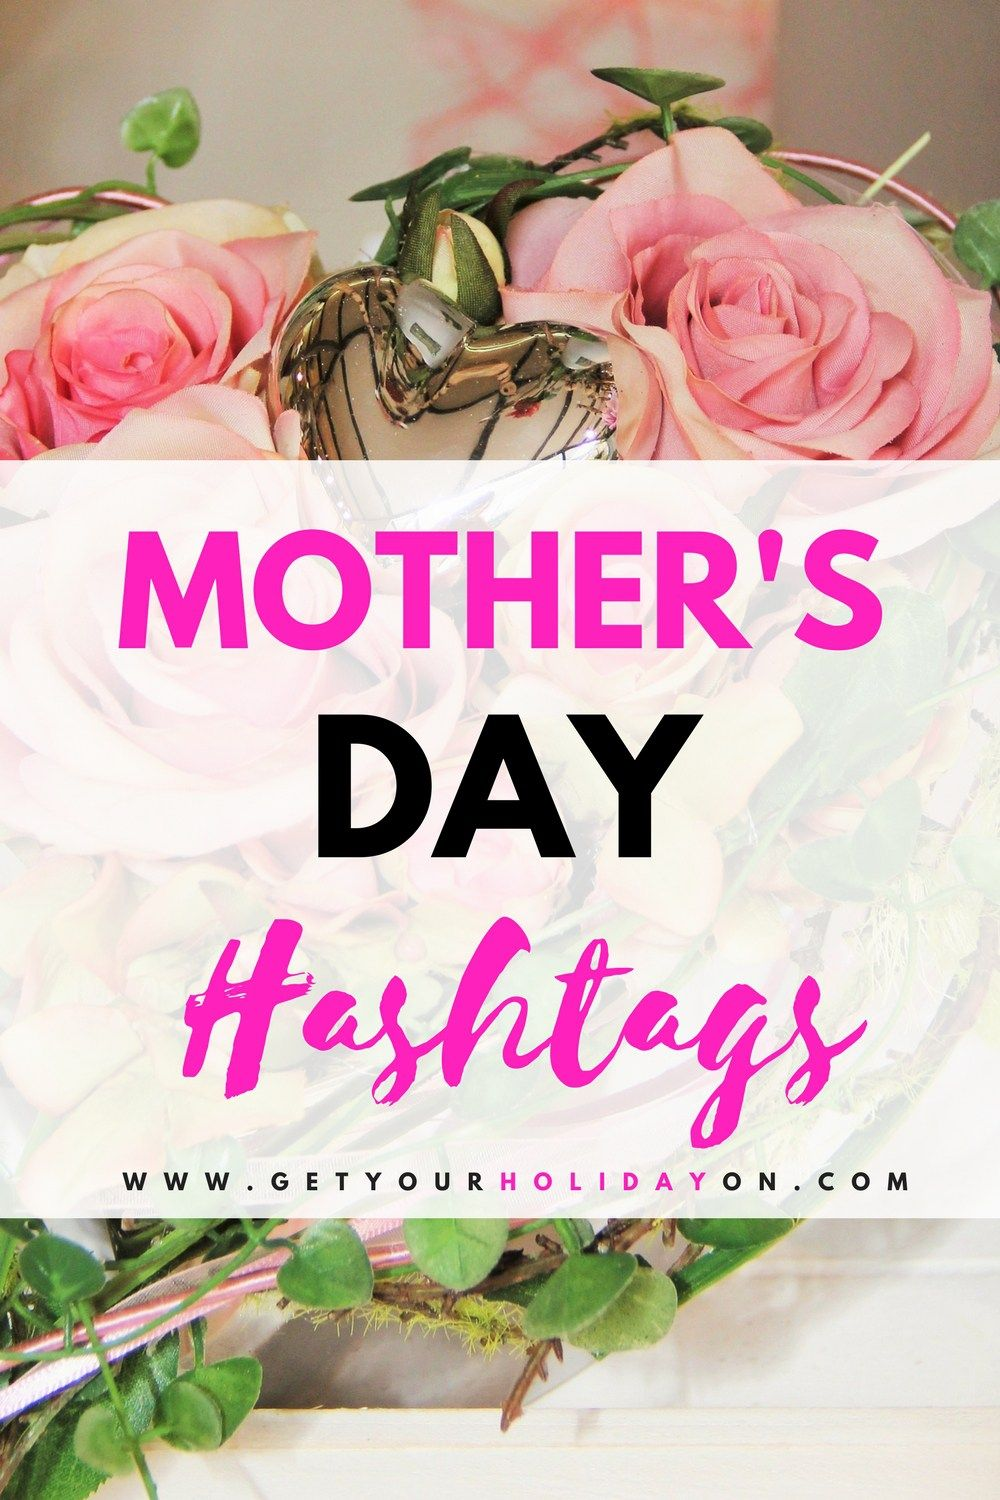 Popular Hashtags For Mothers Day Mothers Day Hashtags Gifts Mothersday Mom Mommy Mothers Day Morhers Day Mother